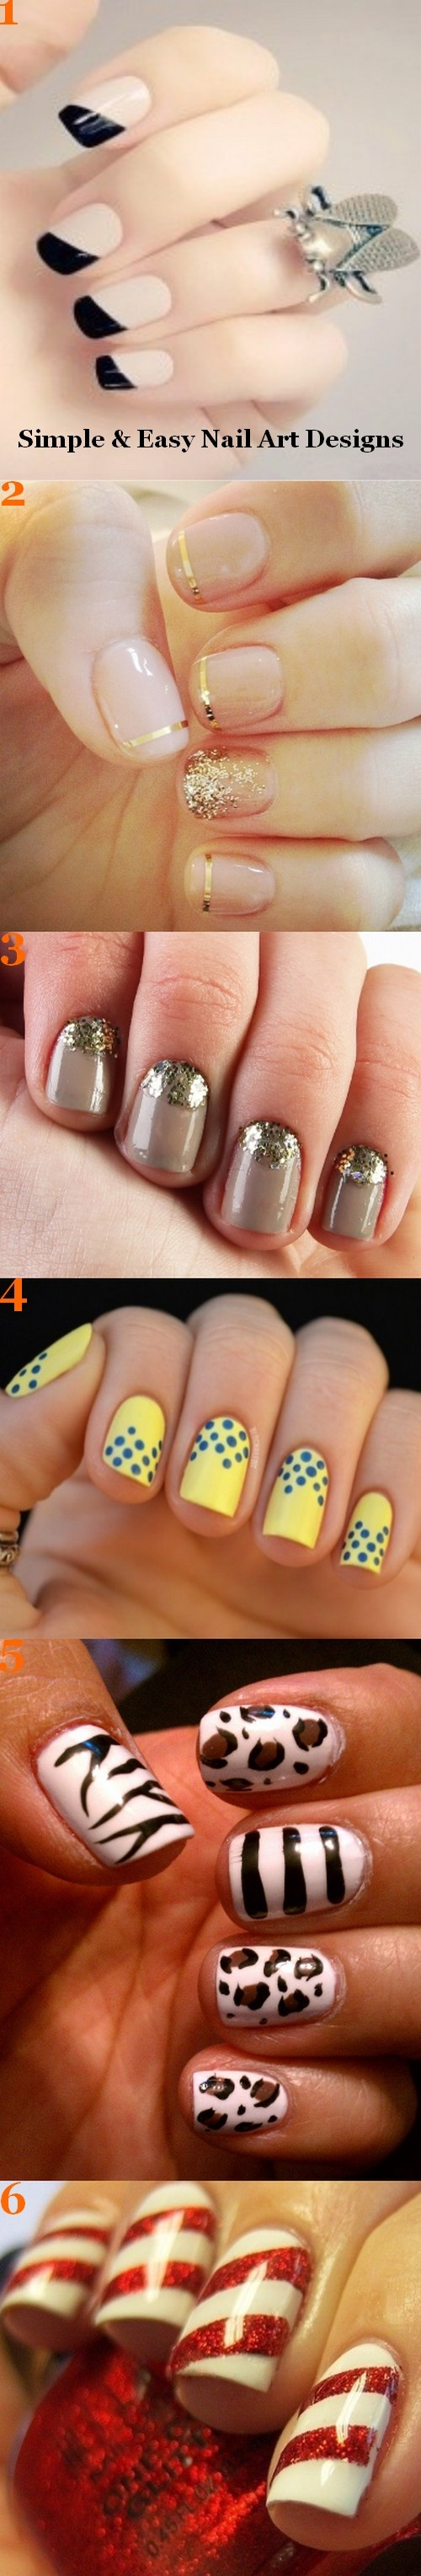 Print the nail by yourself. Join the page's activity. Get a FREE Nail Printer !